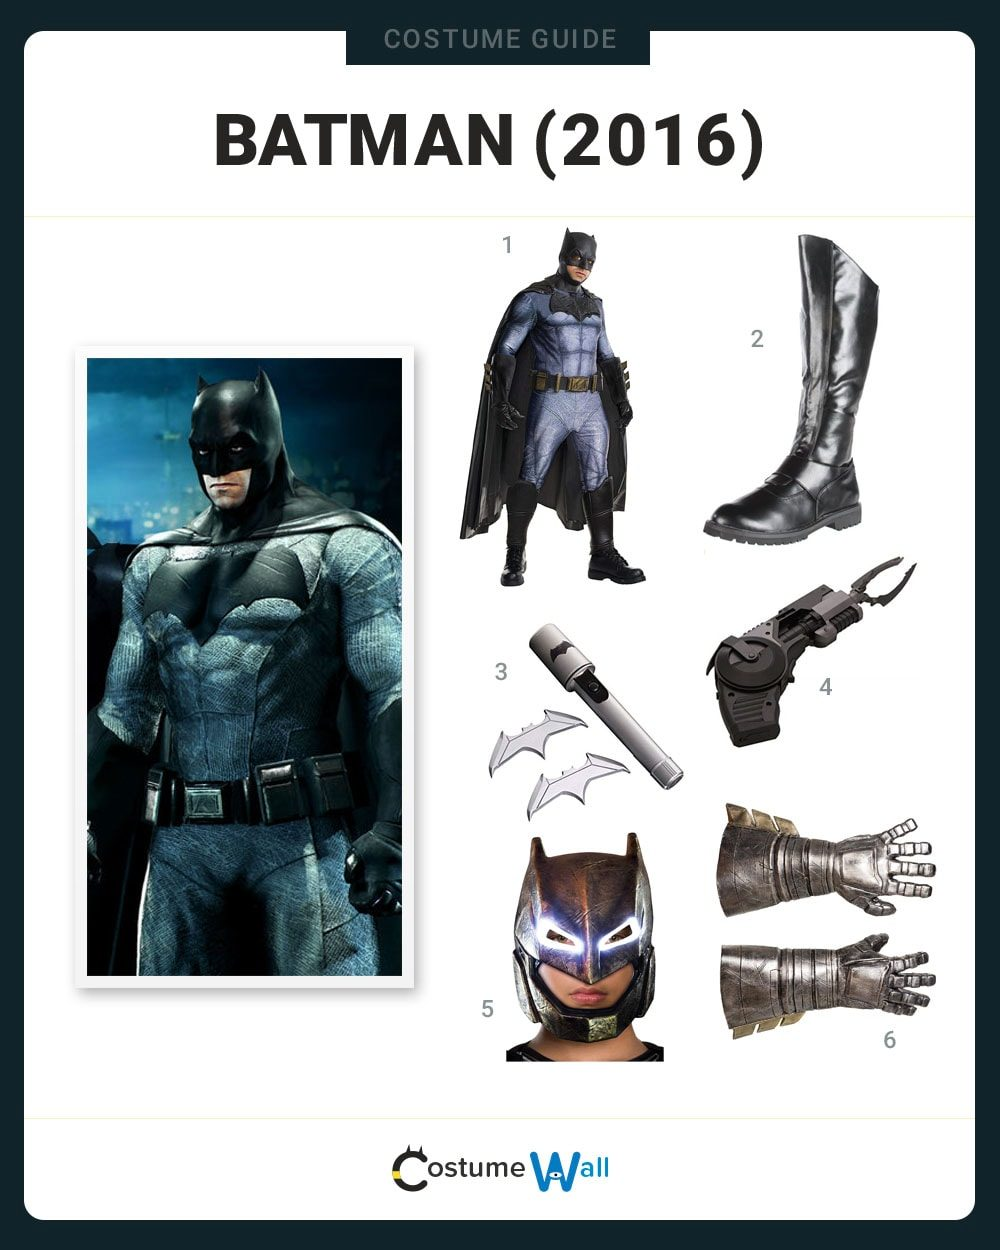 Batman (2016) Costume Guide